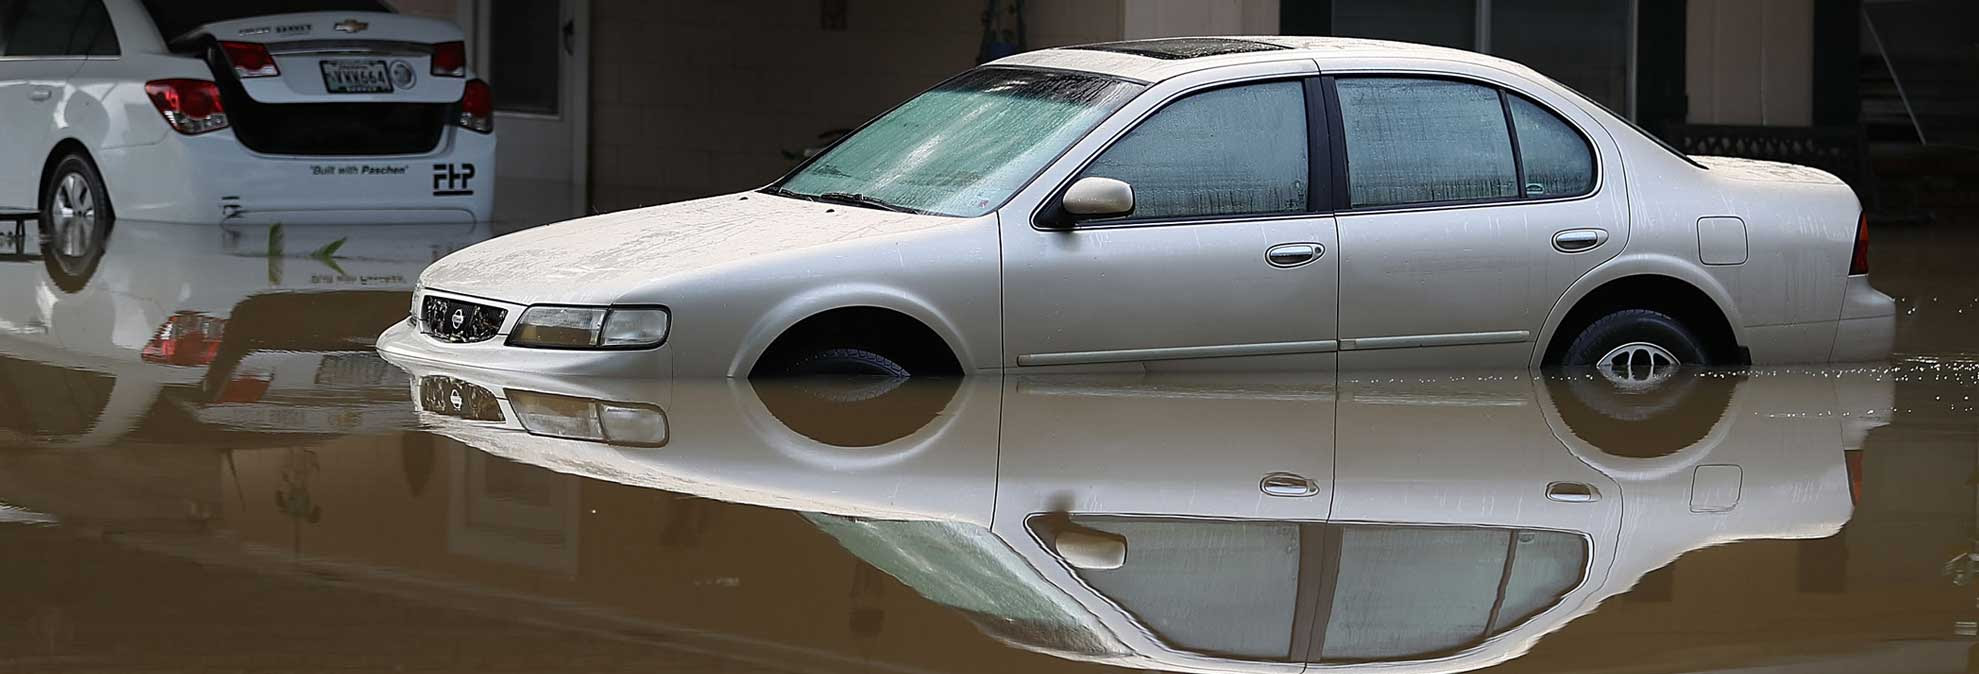 Beware A Flood Of Flooded Cars Consumer Reports